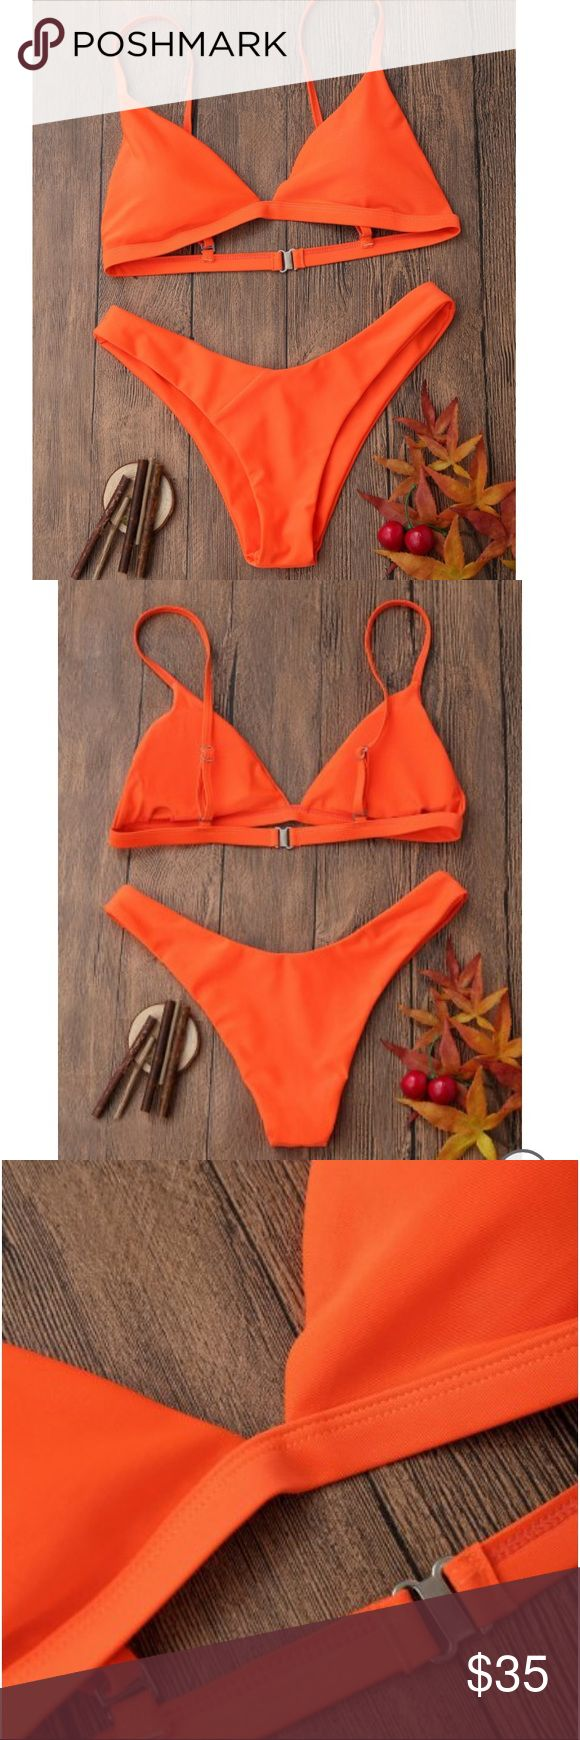 Orange bikini Bright Orange bikini. Bottoms are very Cheeky.  The top is padded and has a clasp to close.  The straps are adjustable.  Please see photos for size chart and additional details. ❌trades Swim Bikinis